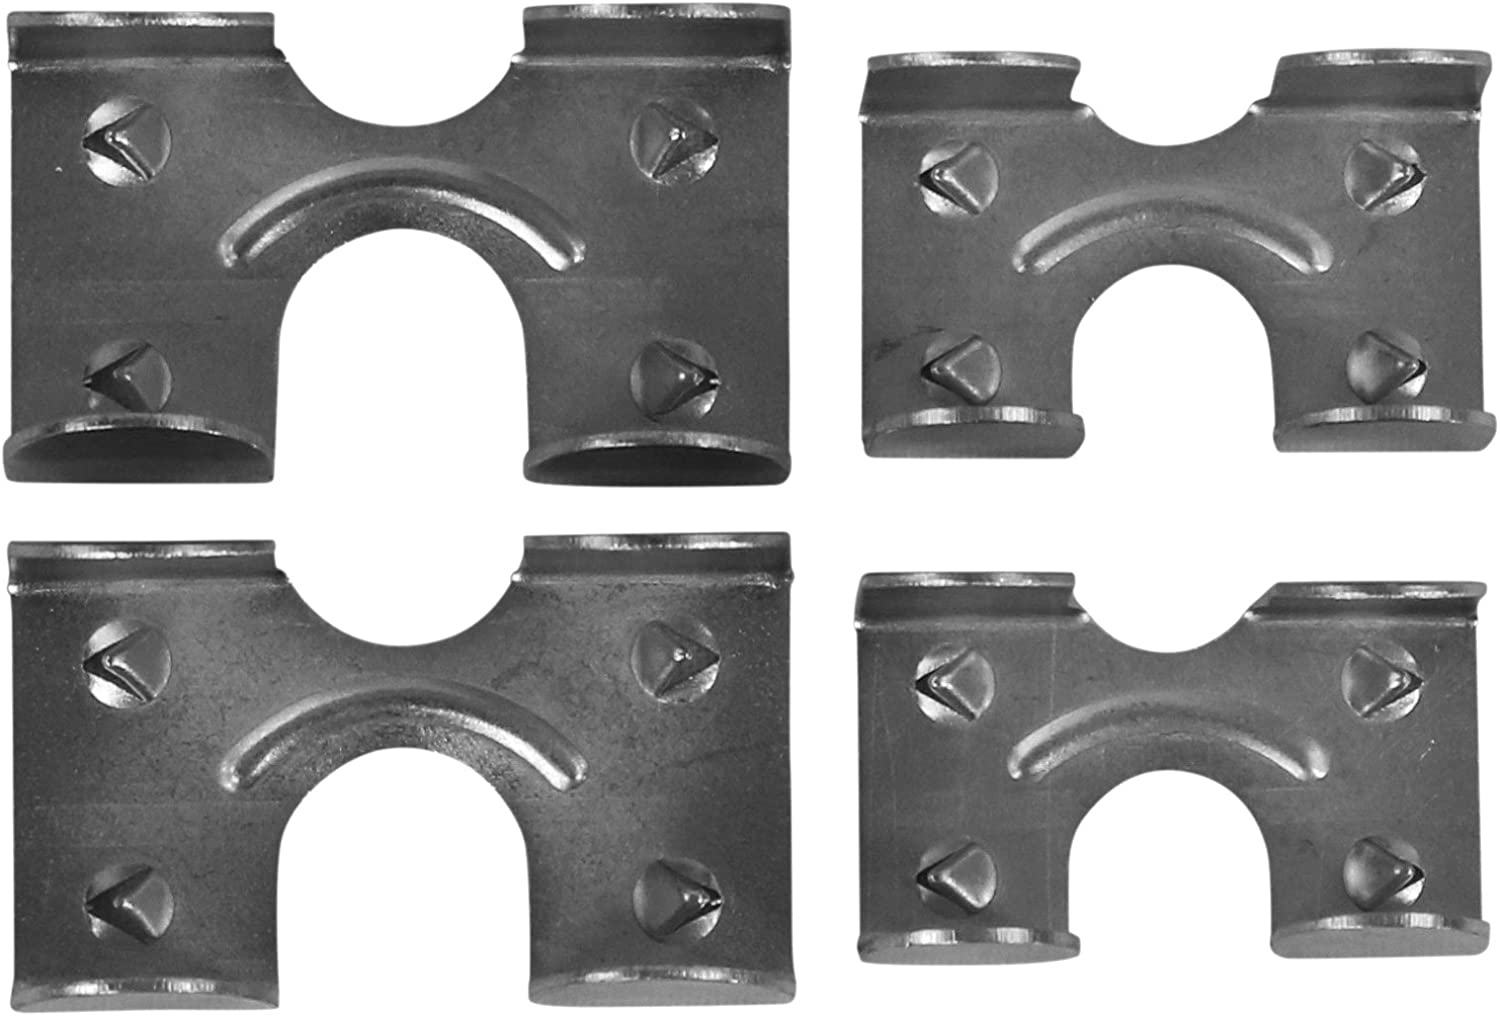 12 Total KingChain Rope Clamps, 1//2-inch Clamps 3//8-inch and 6 Mibro 6